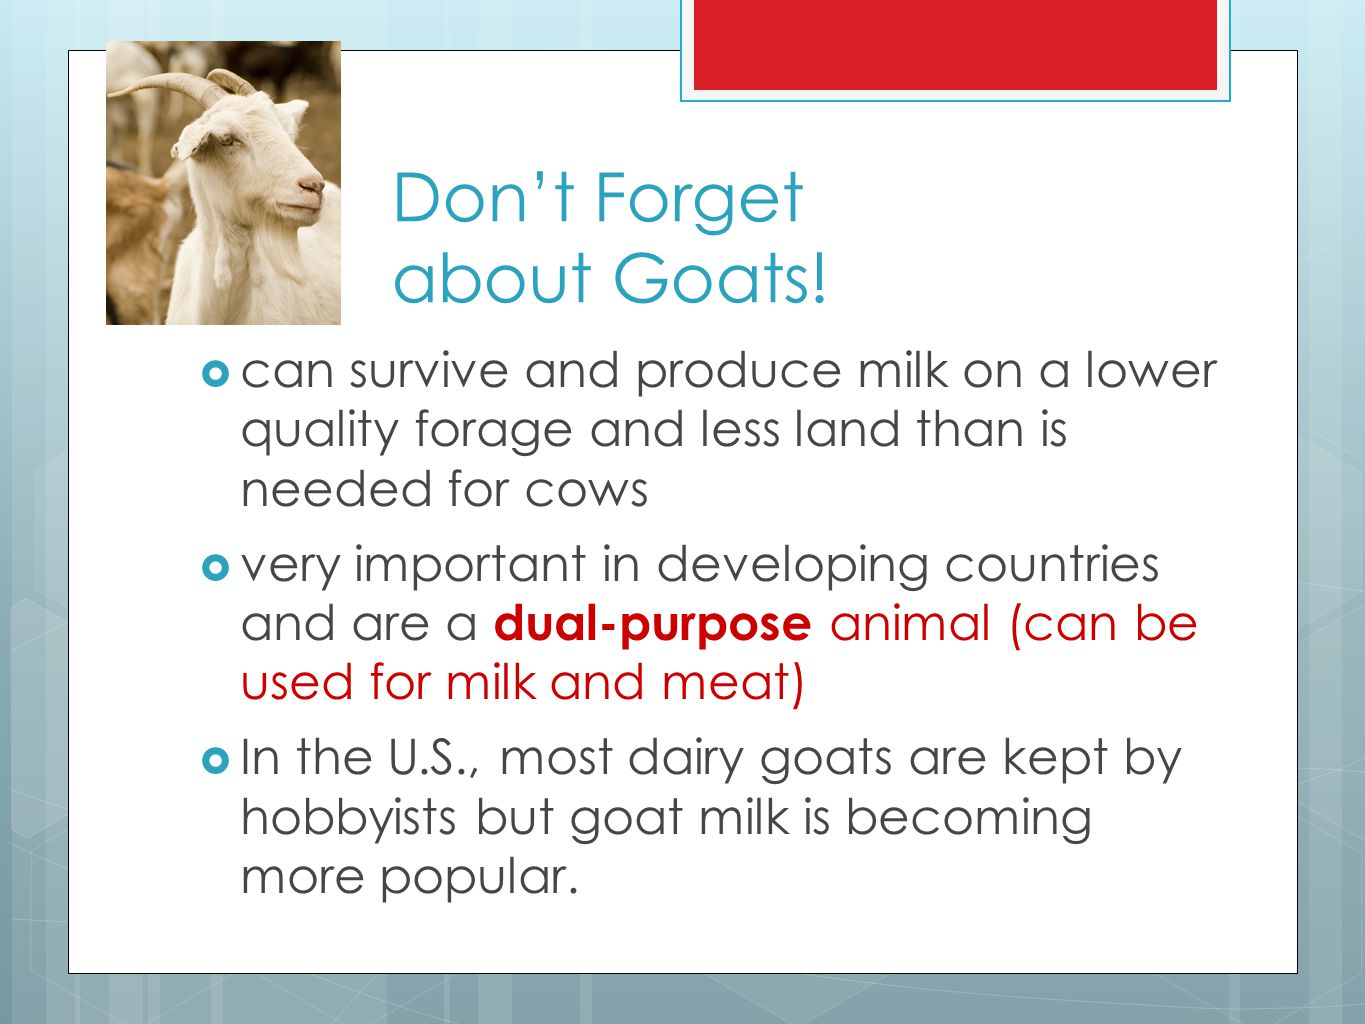 Don't Forget about Goats!